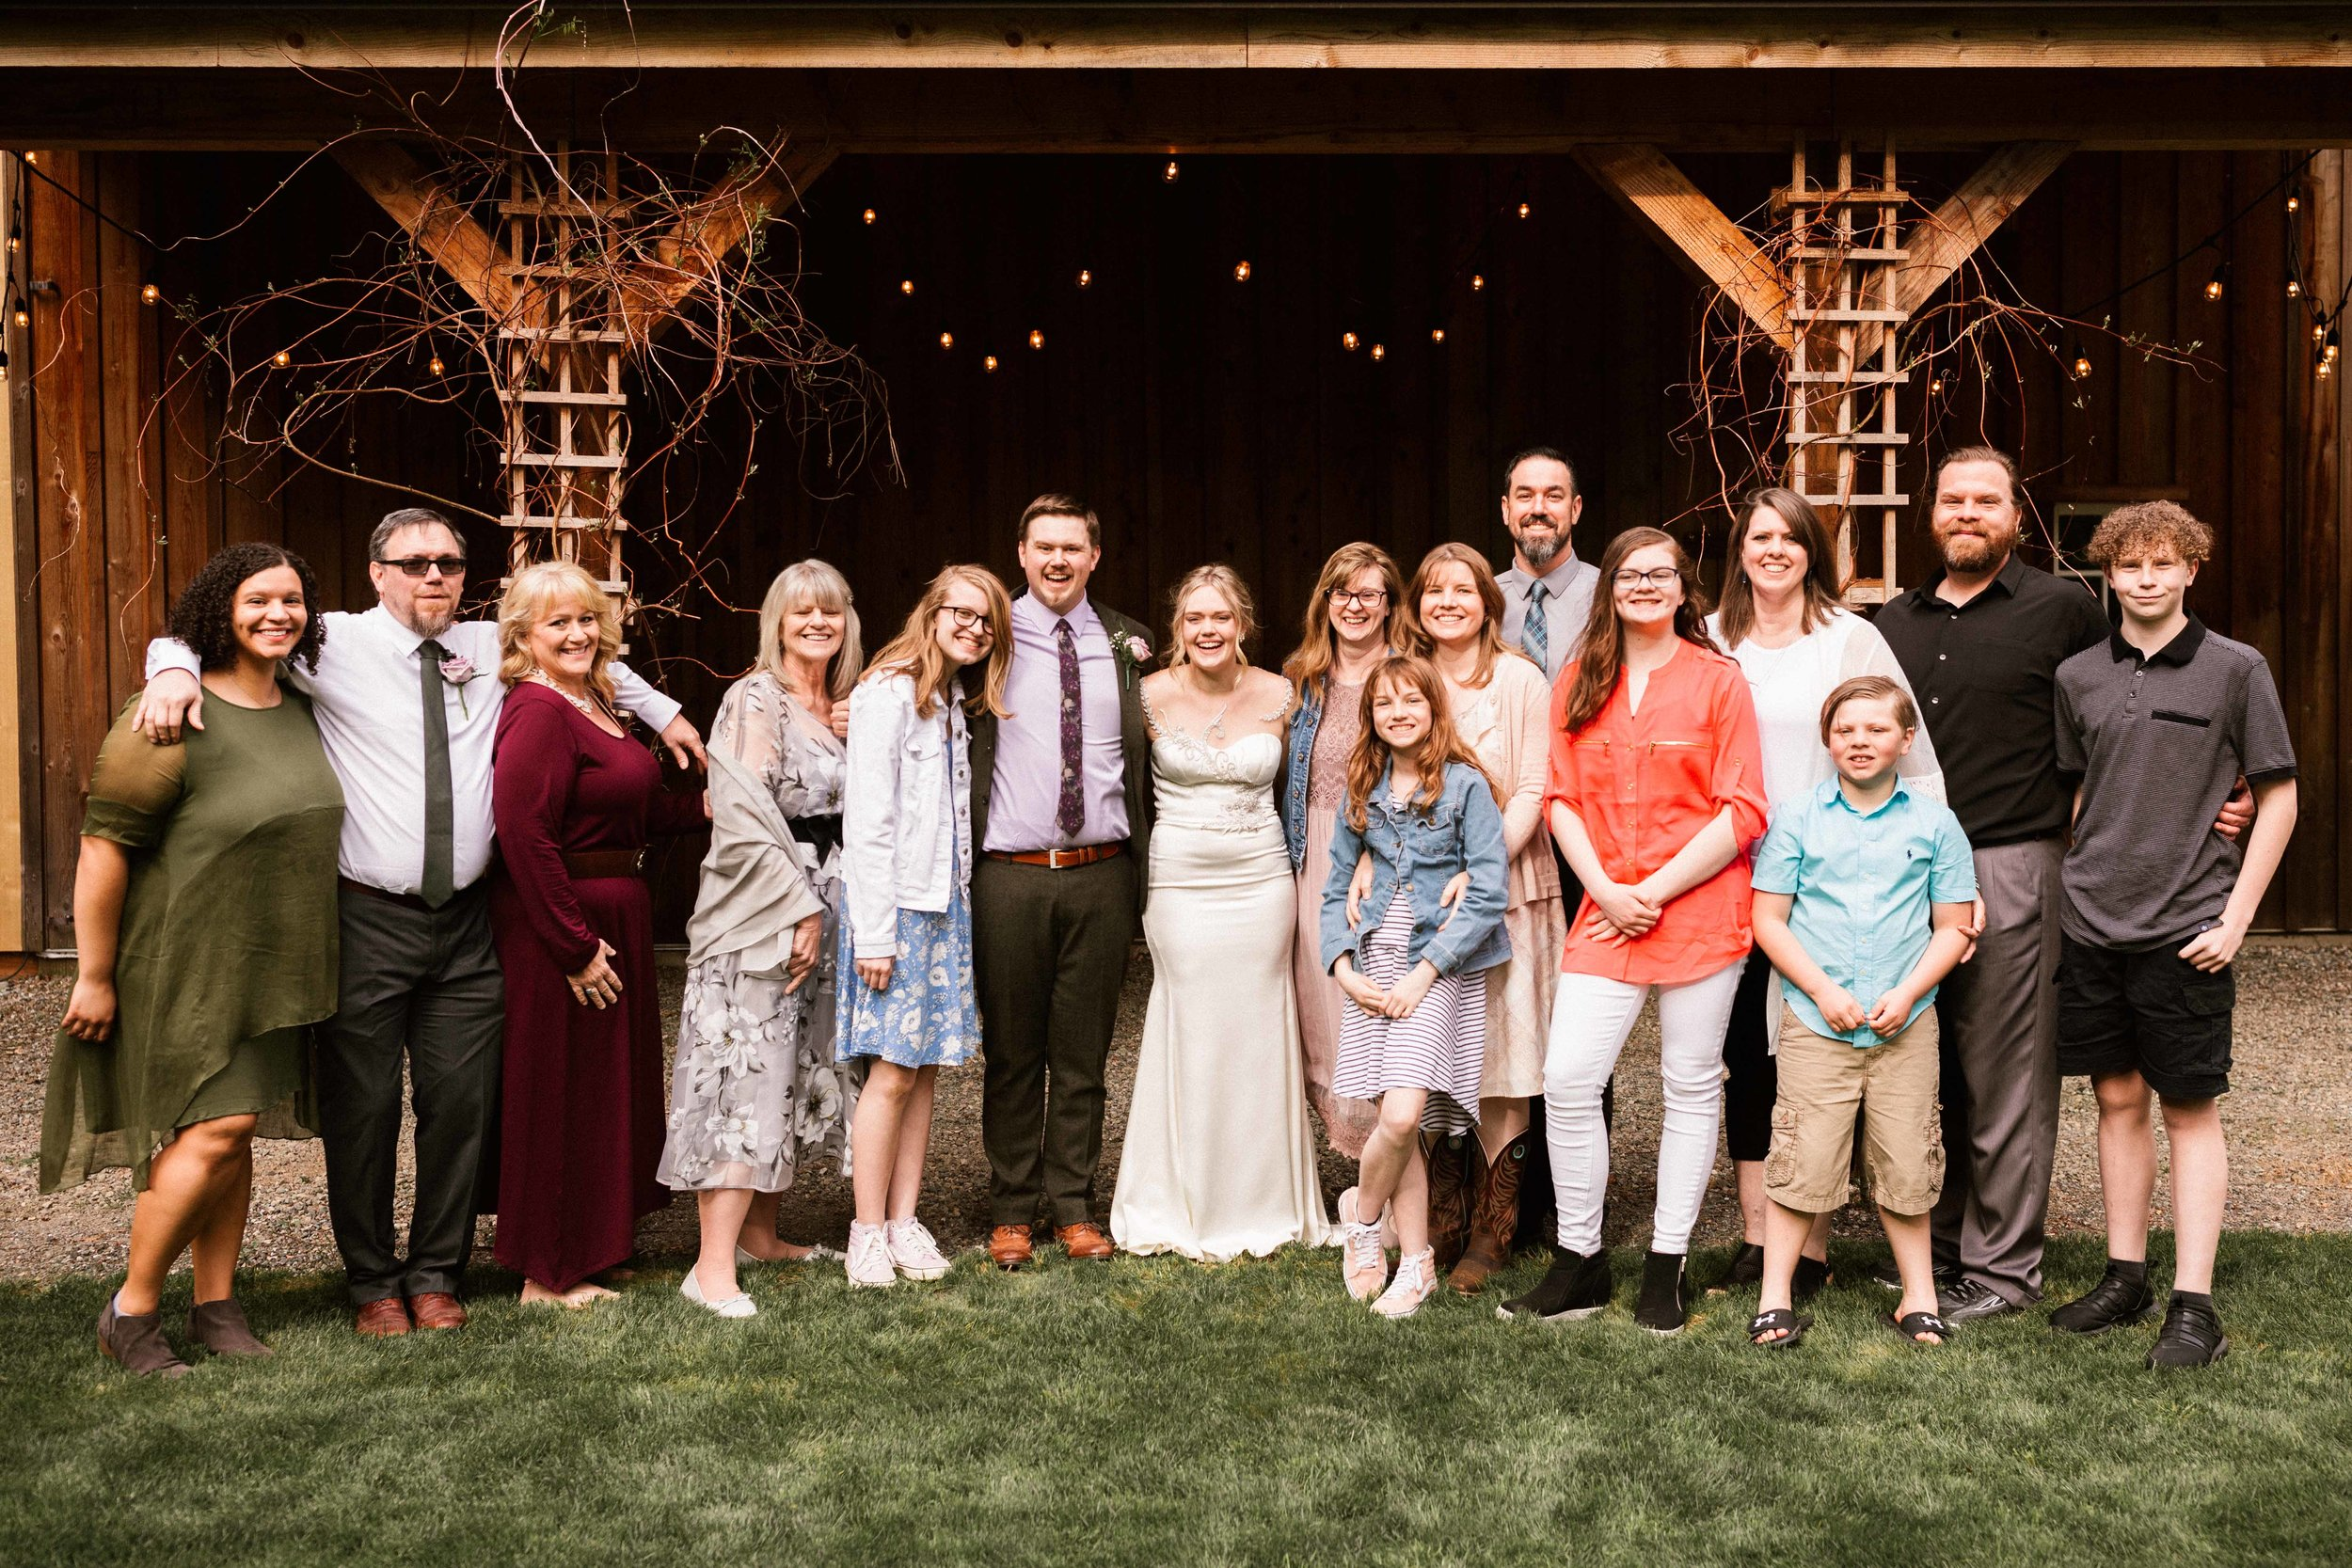 everson-barn-wedding-94.jpg